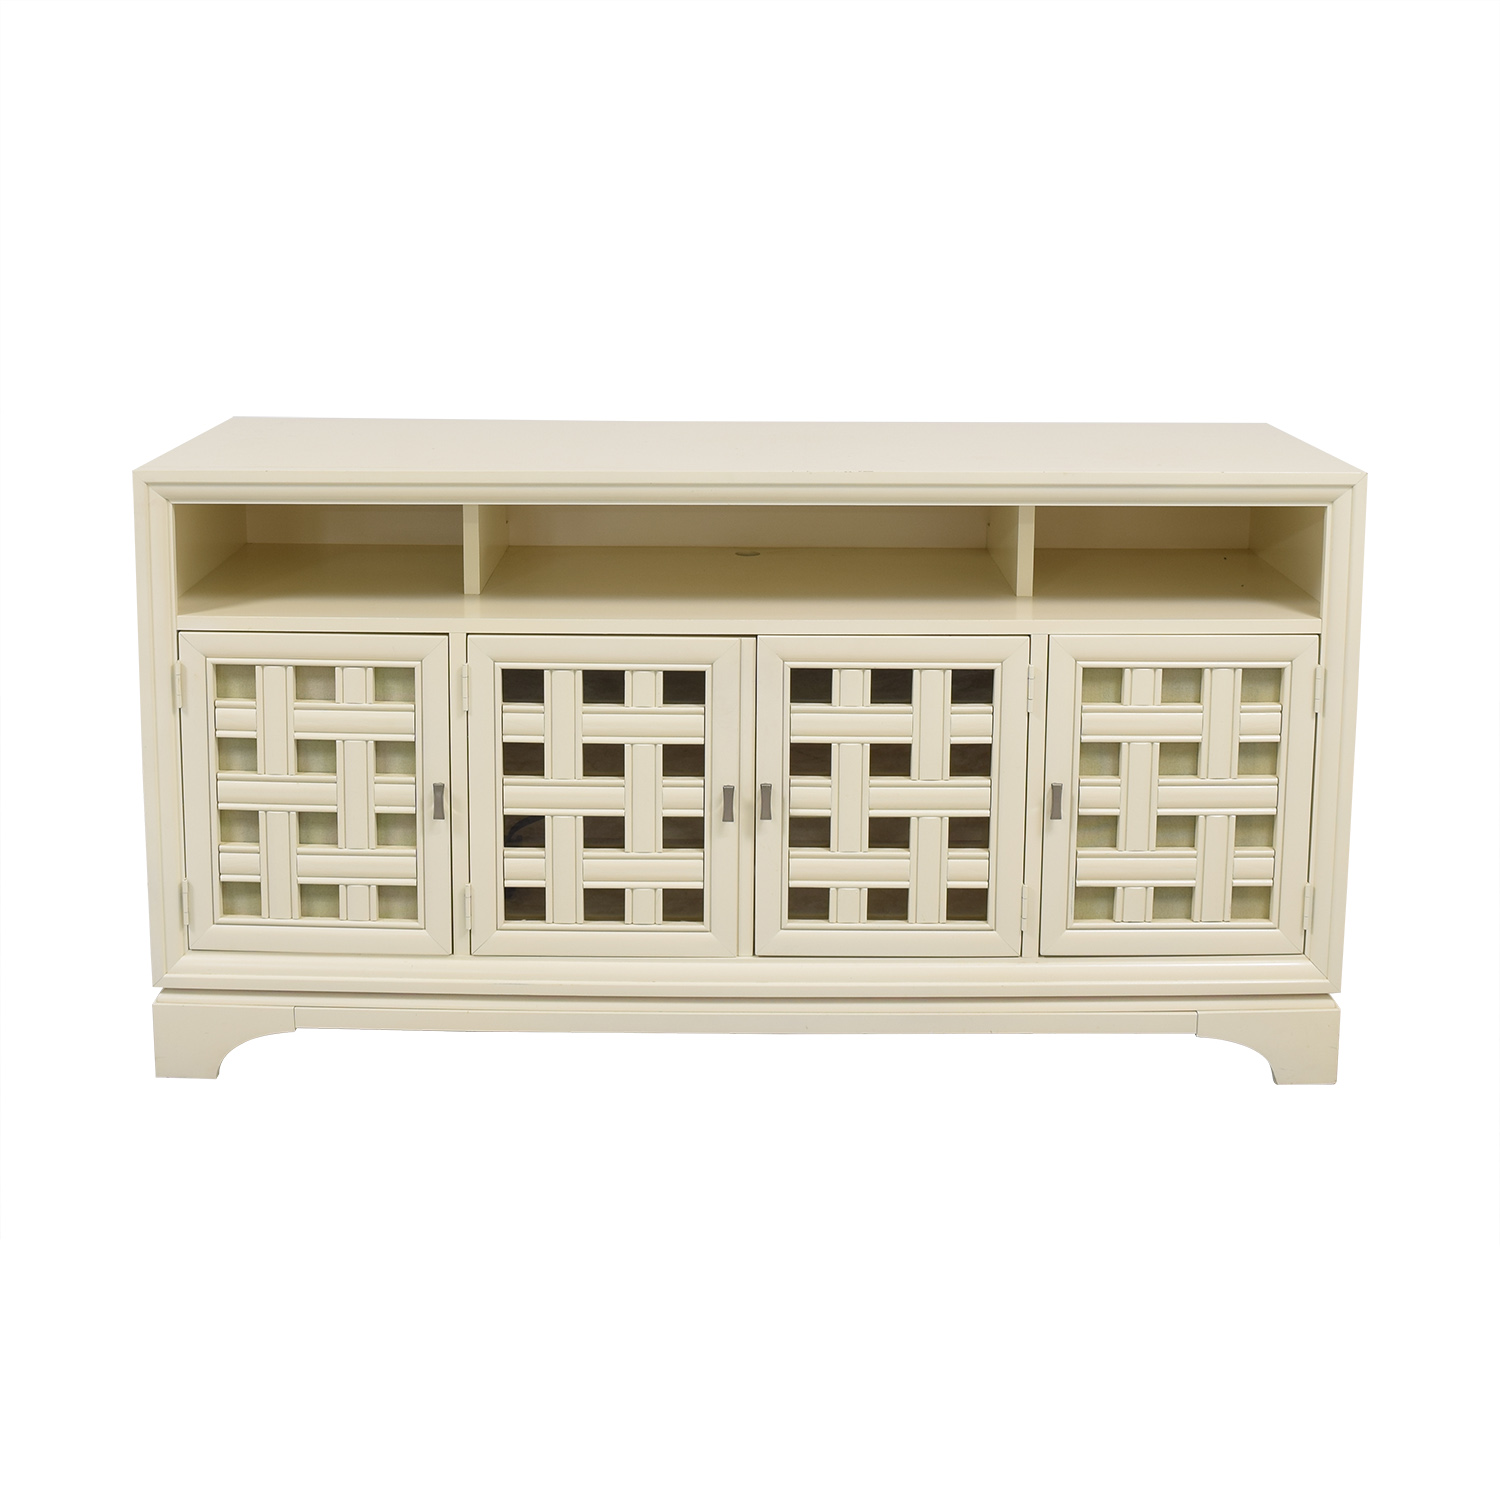 Stanley Furniture Stanley Furniture Media Console nj